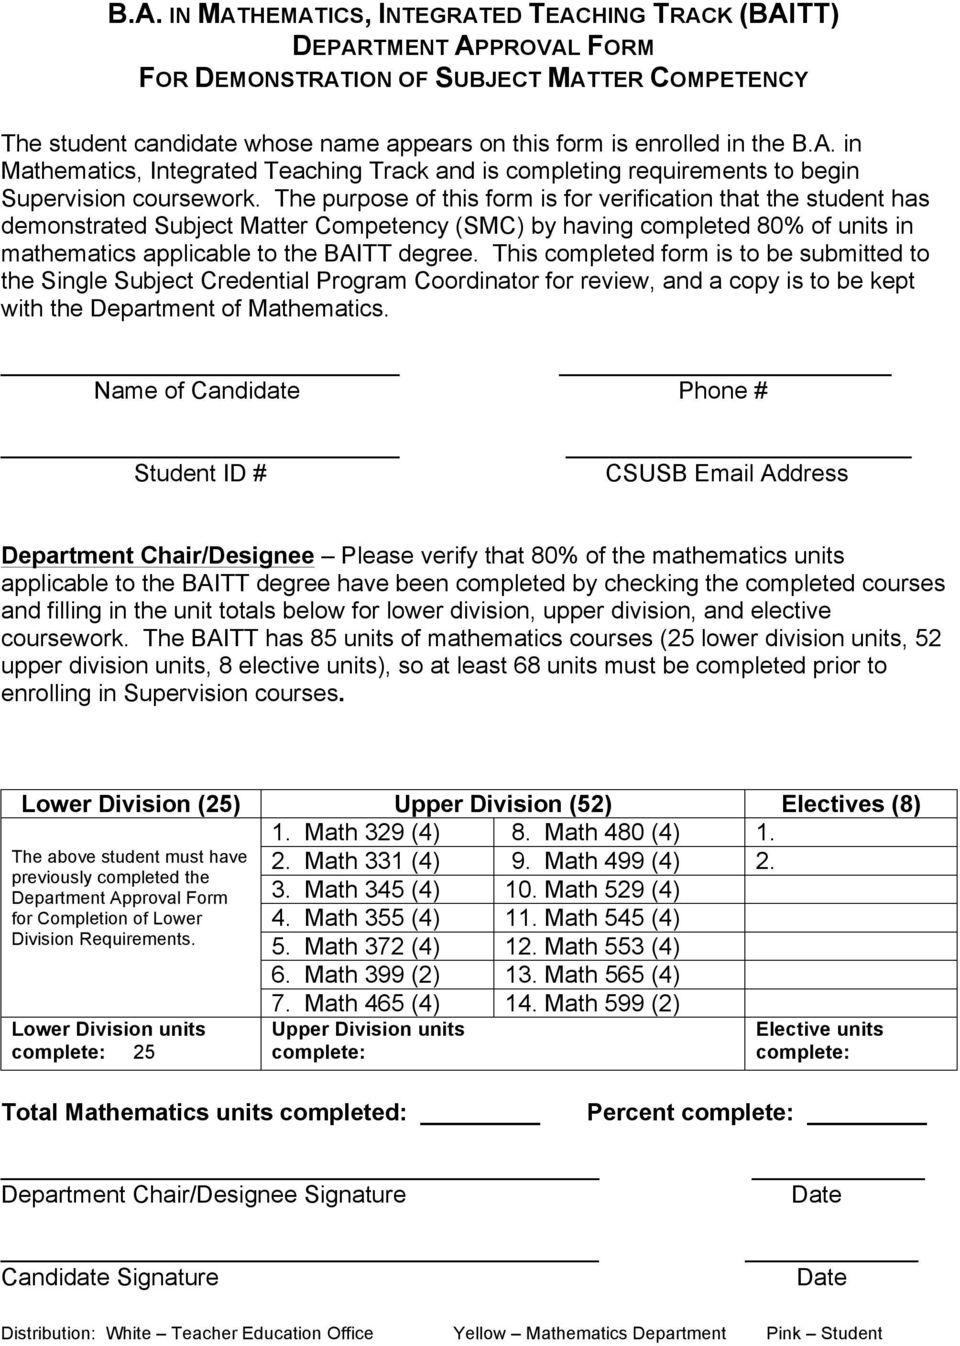 The purpose of this form is for verification that the student has demonstrated Subject Matter Competency (SMC) by having completed 80% of units in mathematics applicable to the BAITT degree.